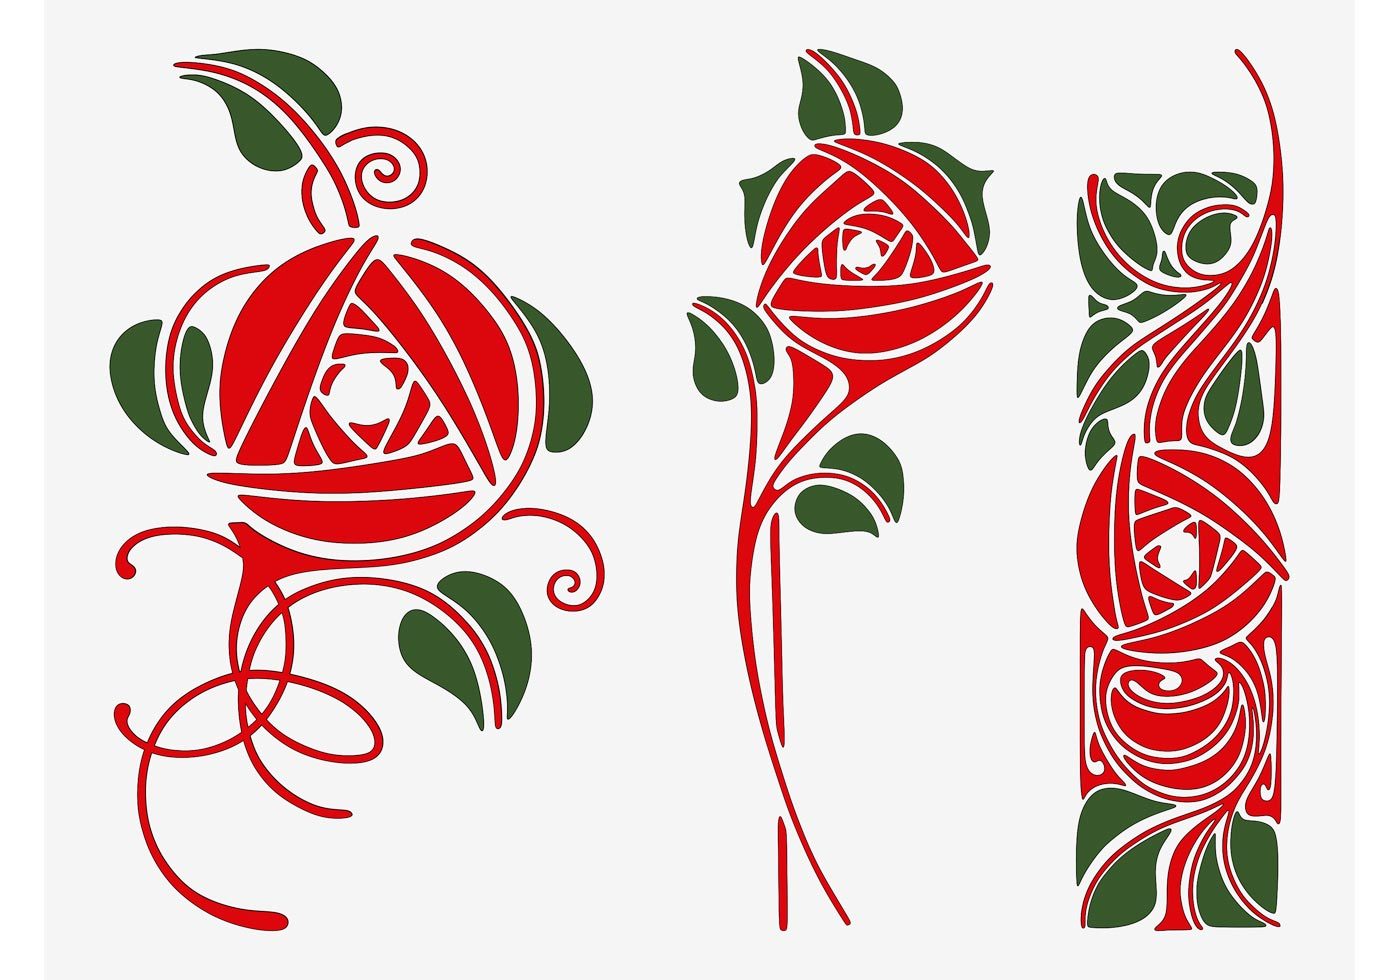 Vector Roses - Download Free Vector Art, Stock Graphics ...  Vector Roses - ...